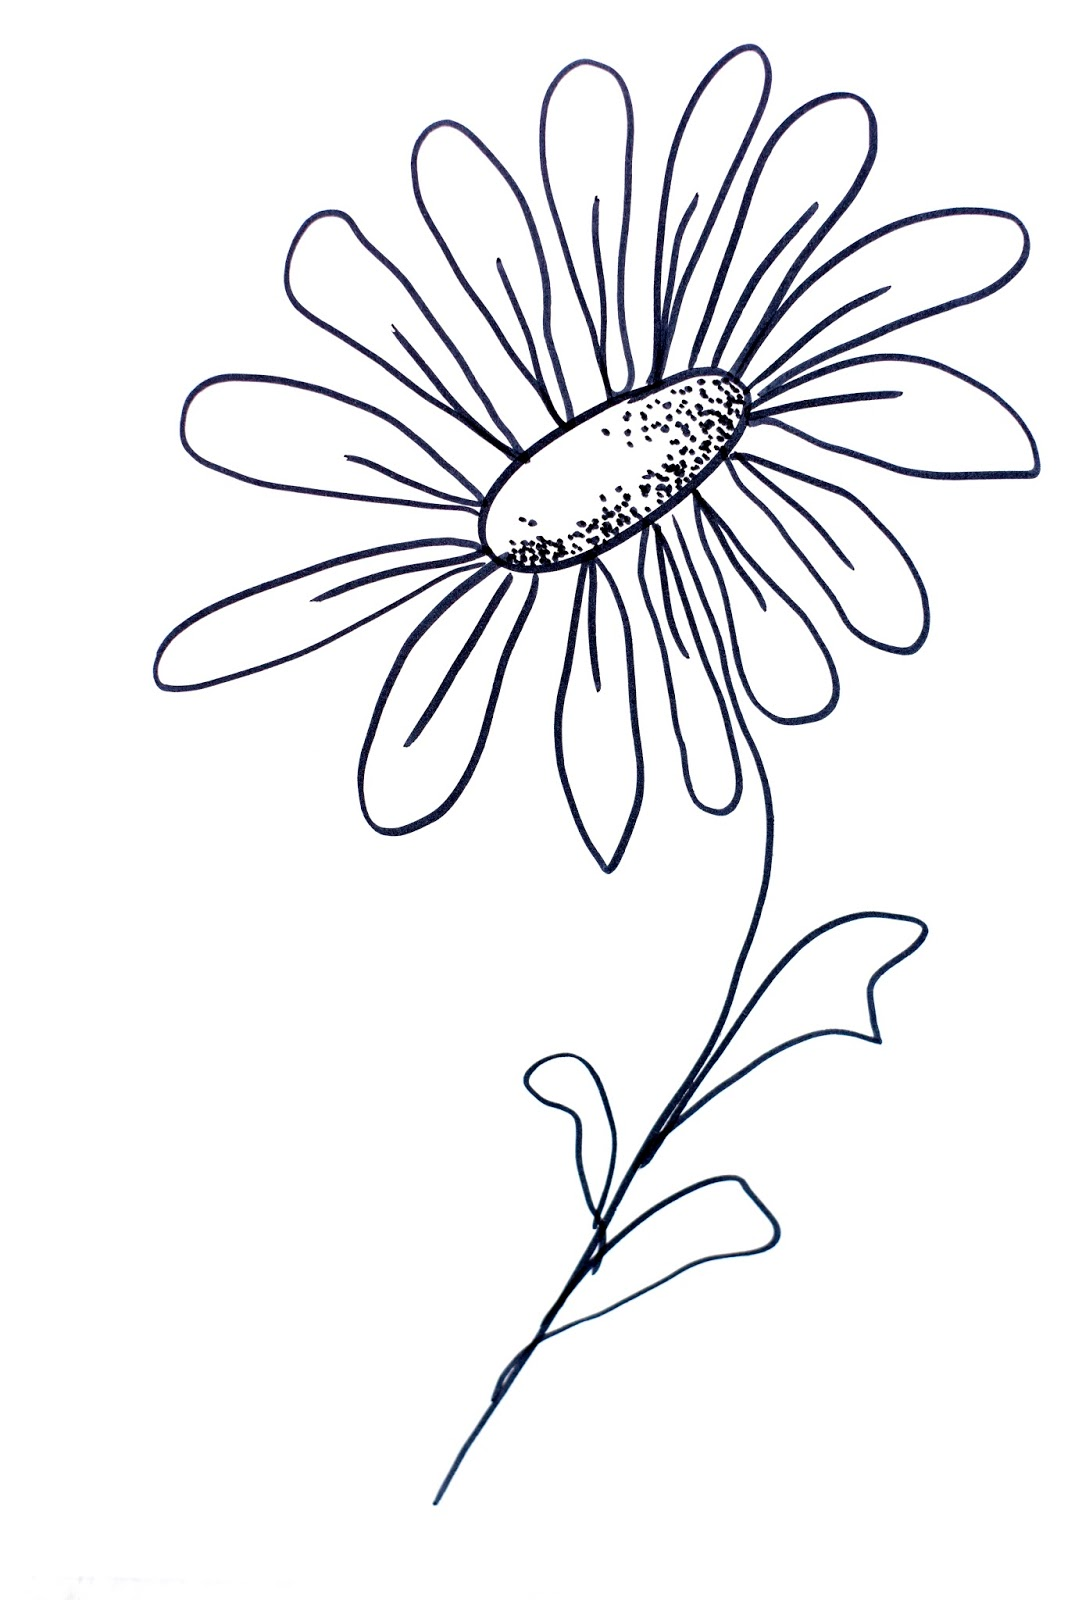 Lettering Line Drawing Motivation How To Draw Flowers 29